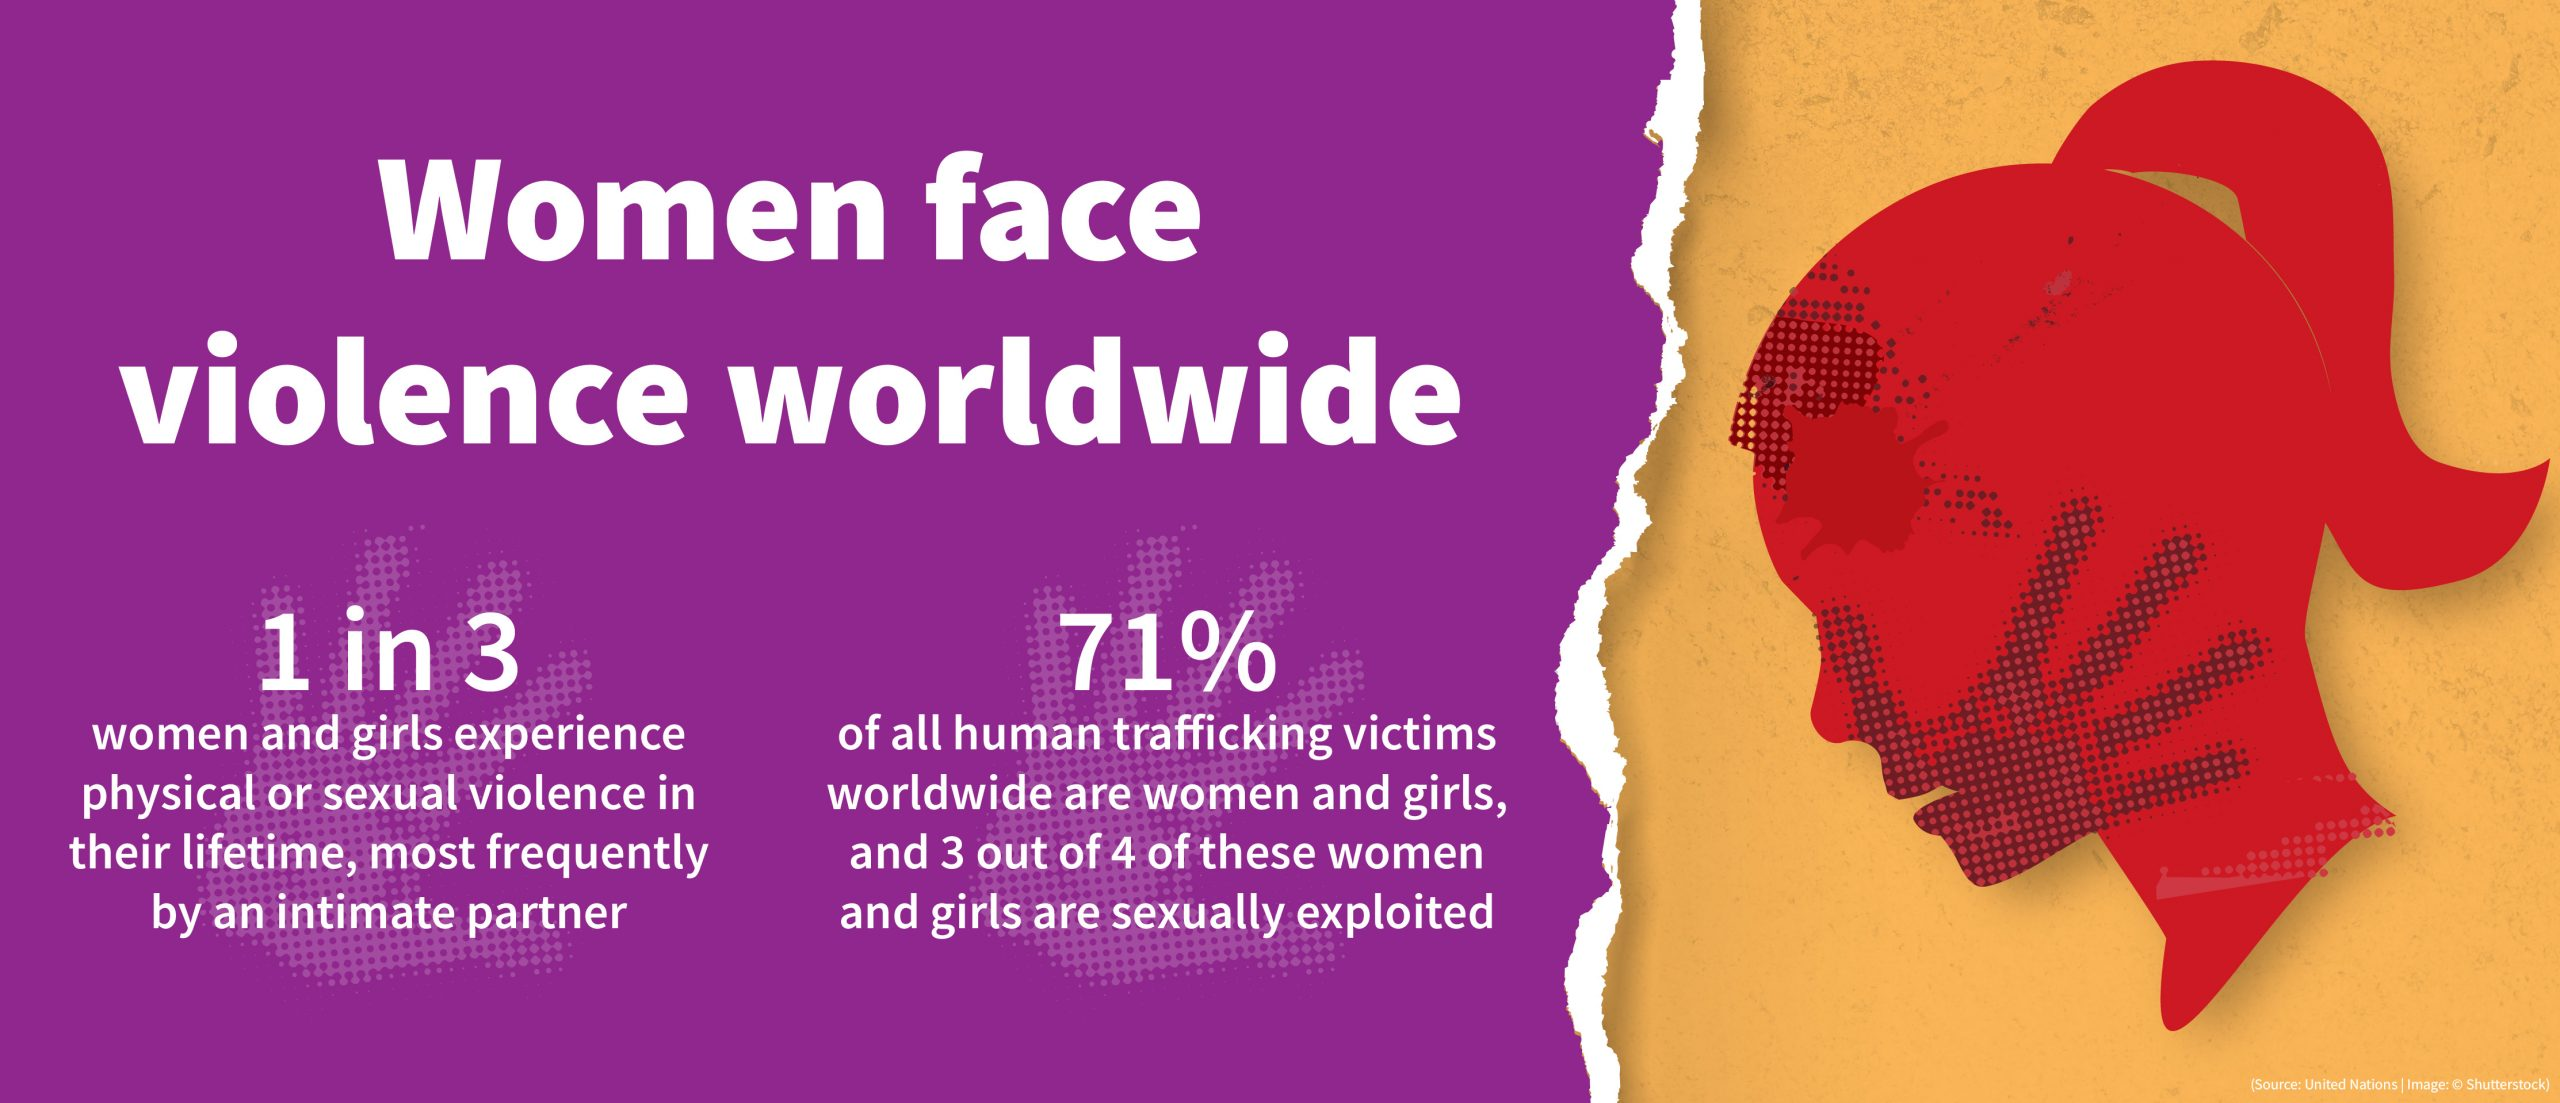 Graphic with data on violence faced by women worldwide (State Dept./Buck Insley)